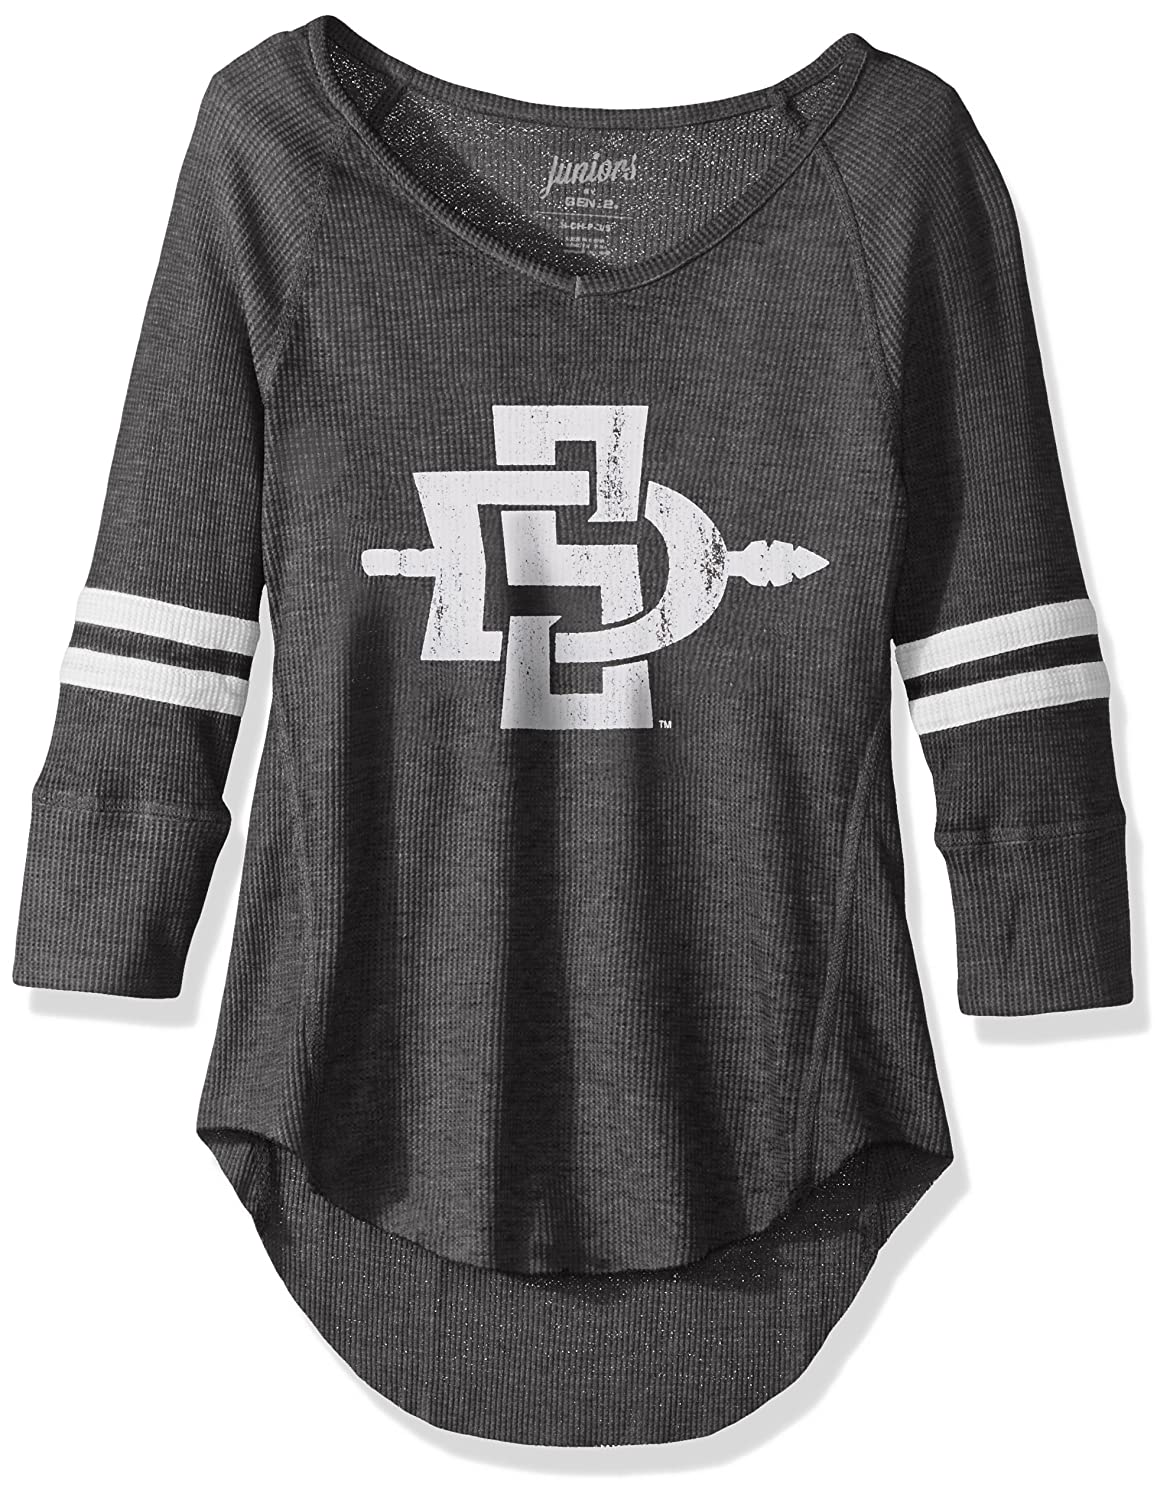 11-13 Team Color NCAA San Diego State Aztecs Juniors Outerstuff Relaxed 3//4 Raglan Thermal Top Large